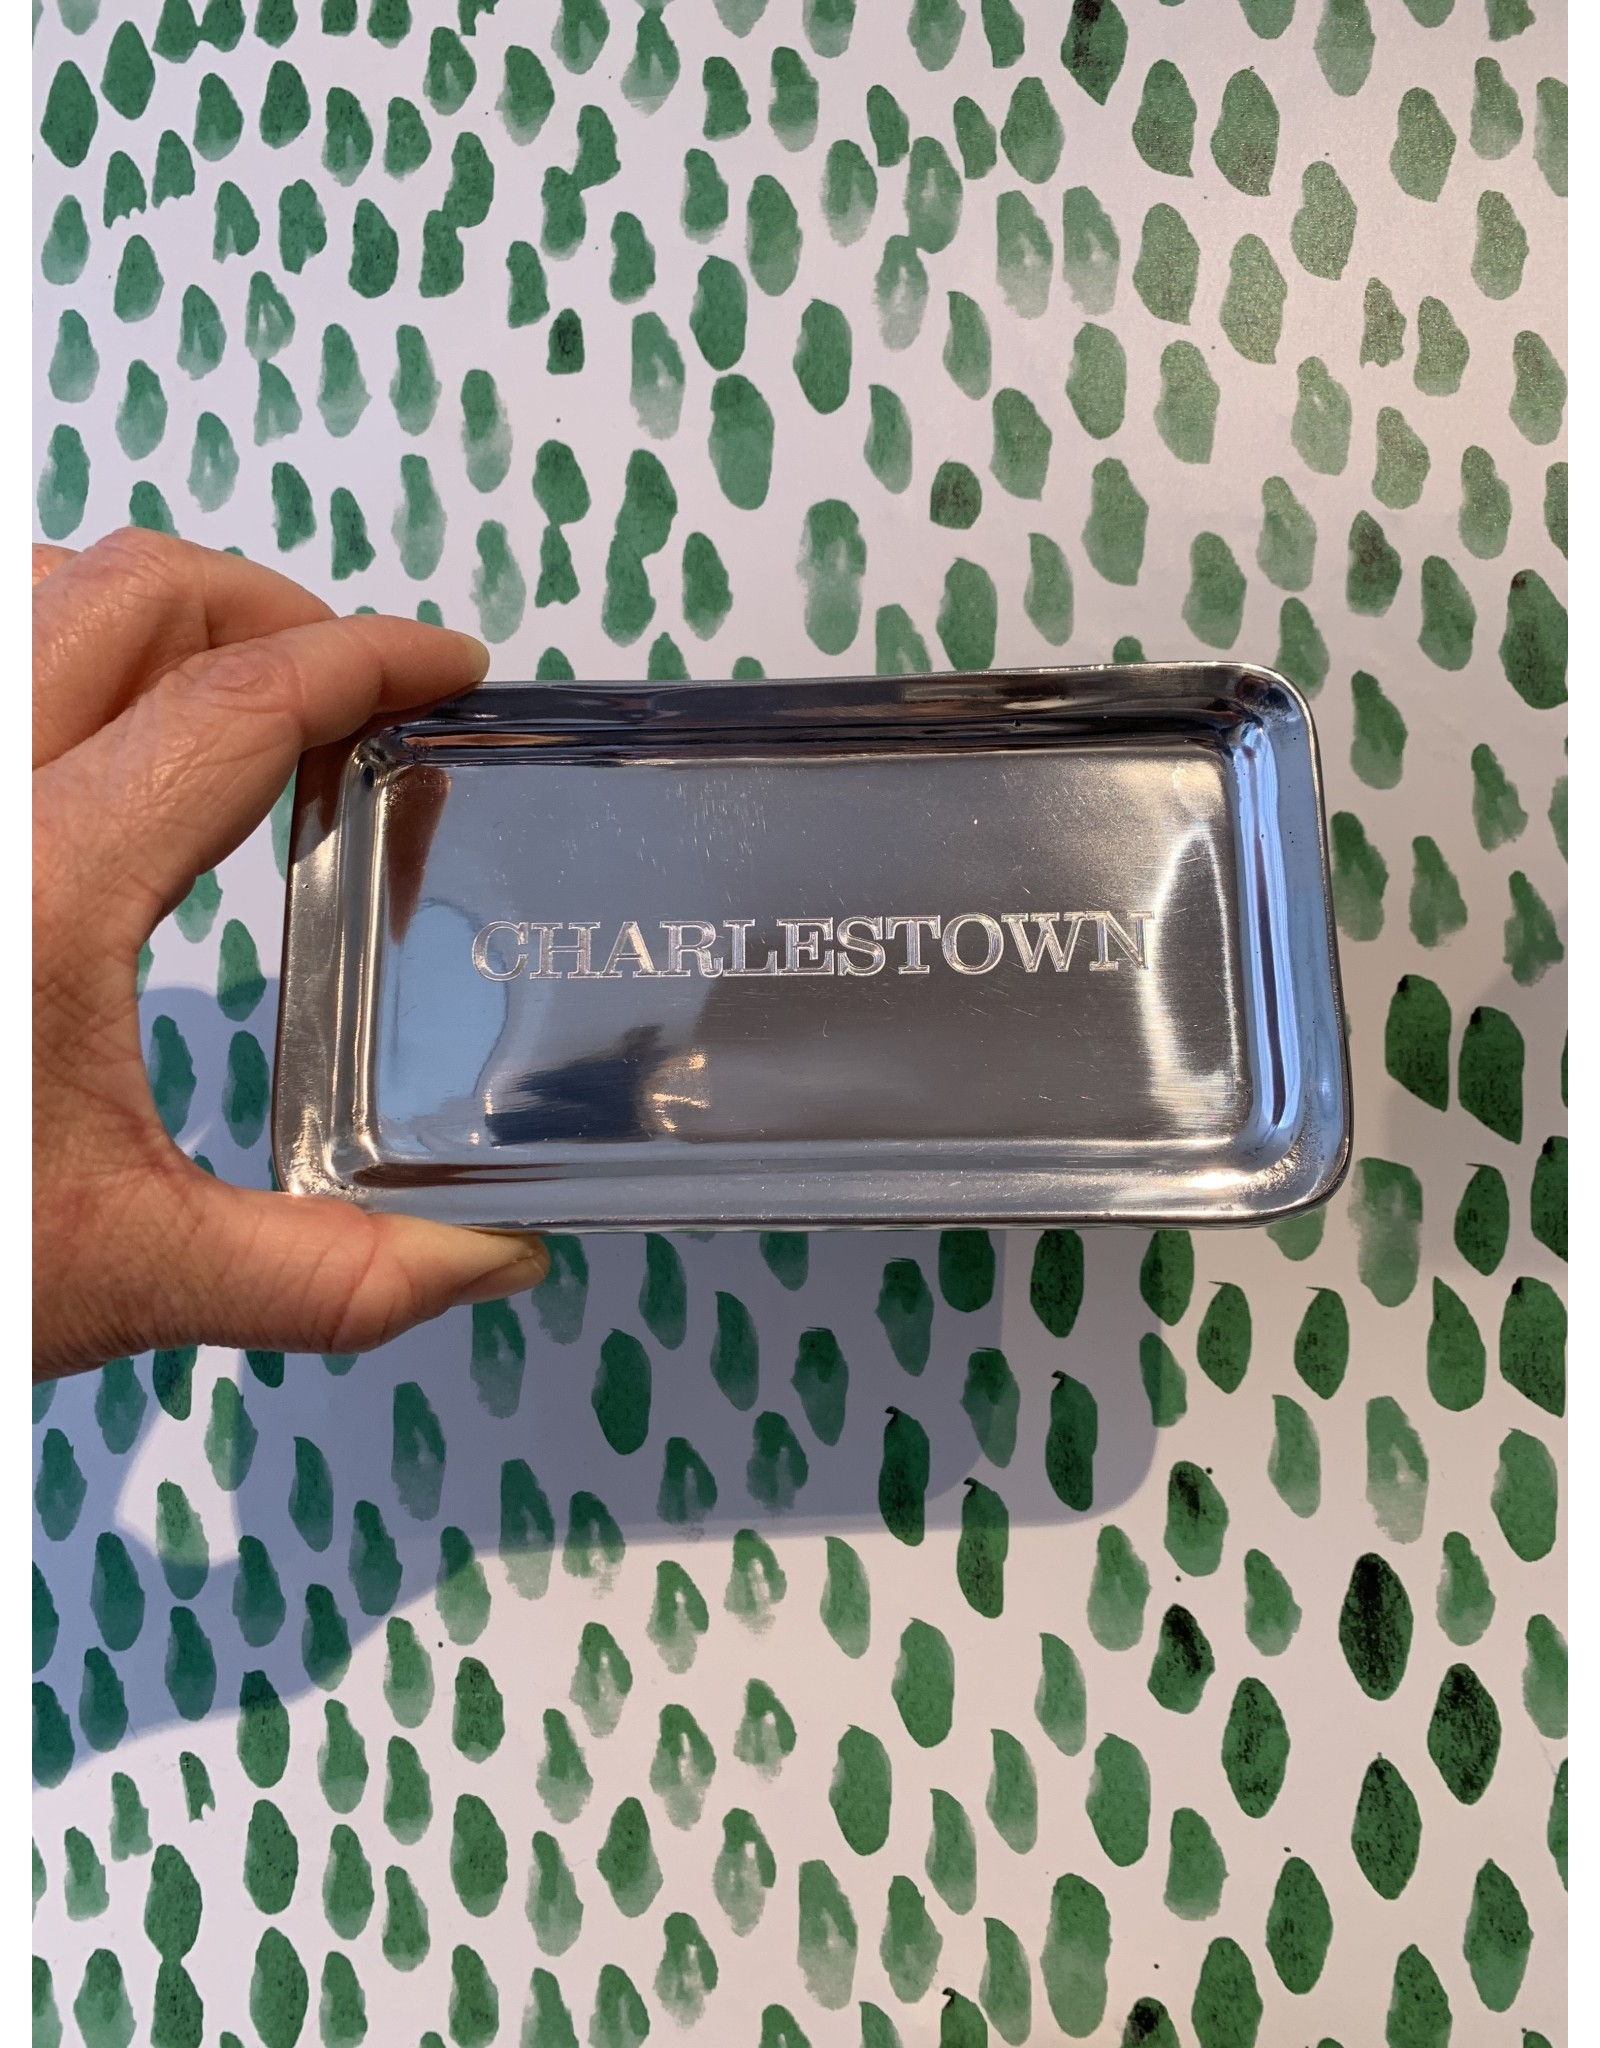 Mariposa Charlestown Signature Tray